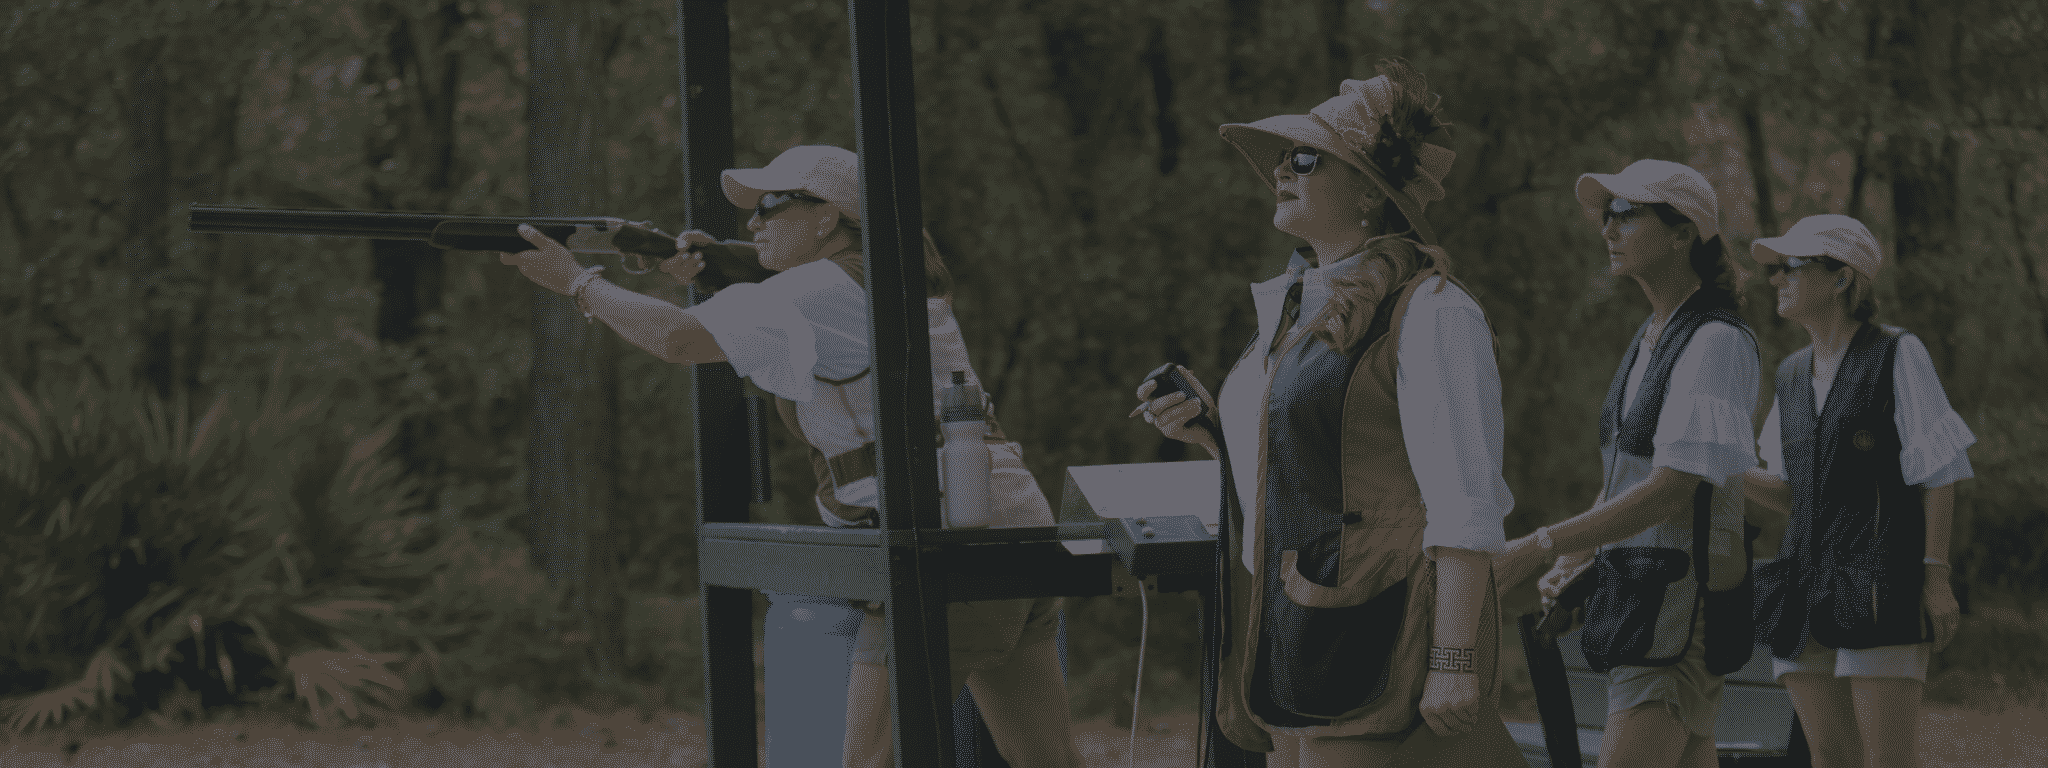 5th Annual Lowcountry Annie Oakleys Charity Clays Tournament